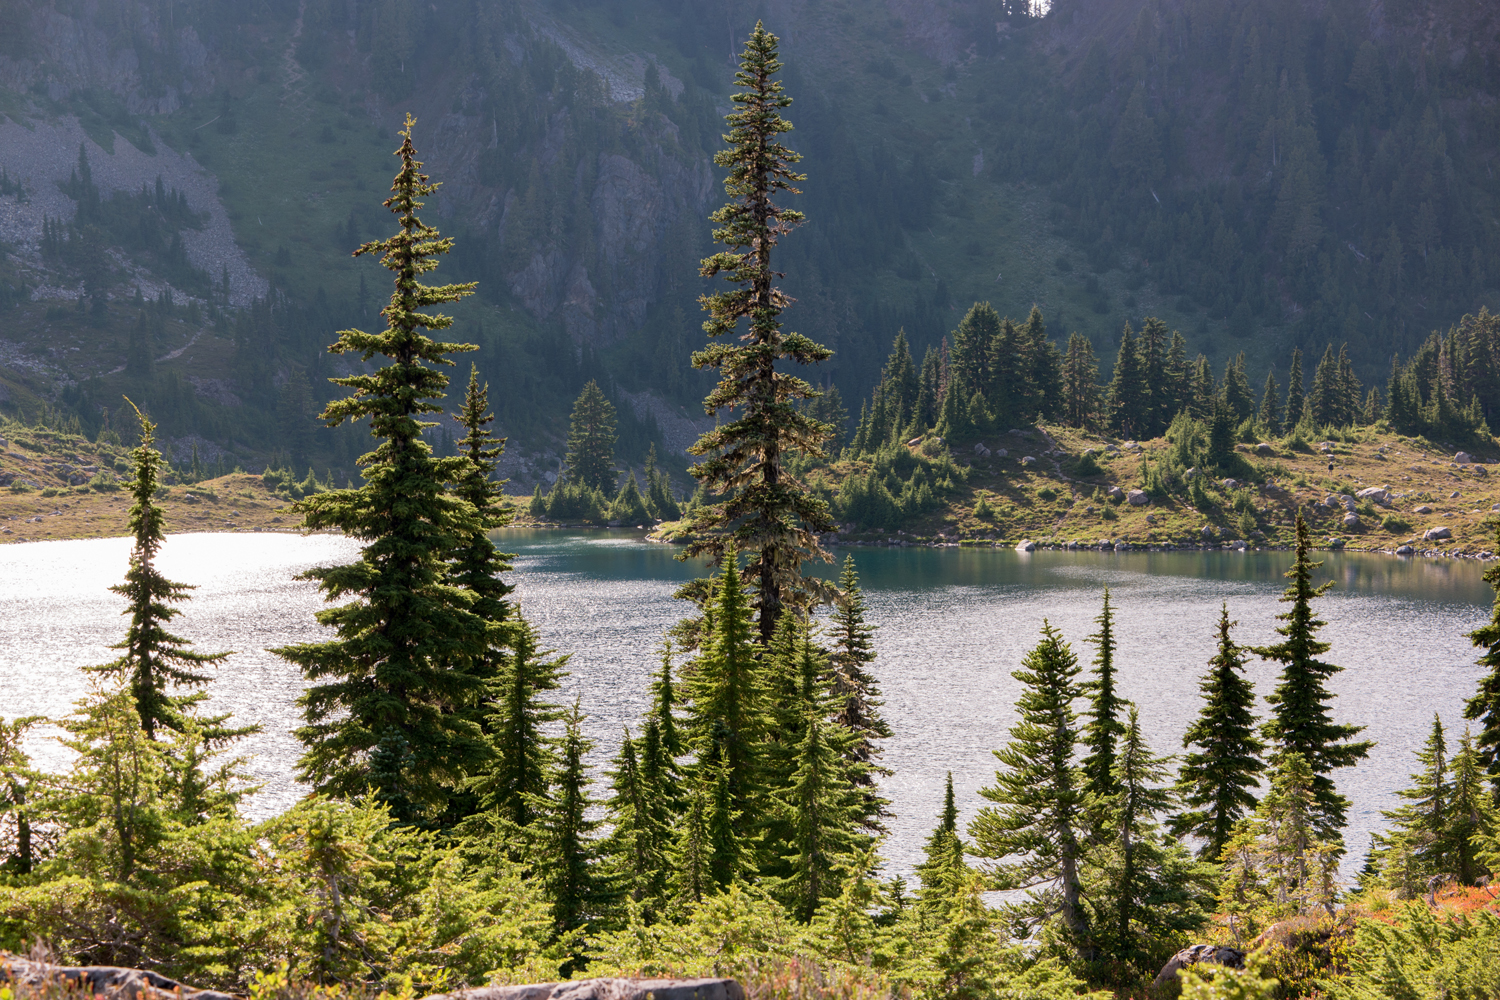 Wasim Muklashy Photography_Olympic National Park_High Divide Loop_065.jpg